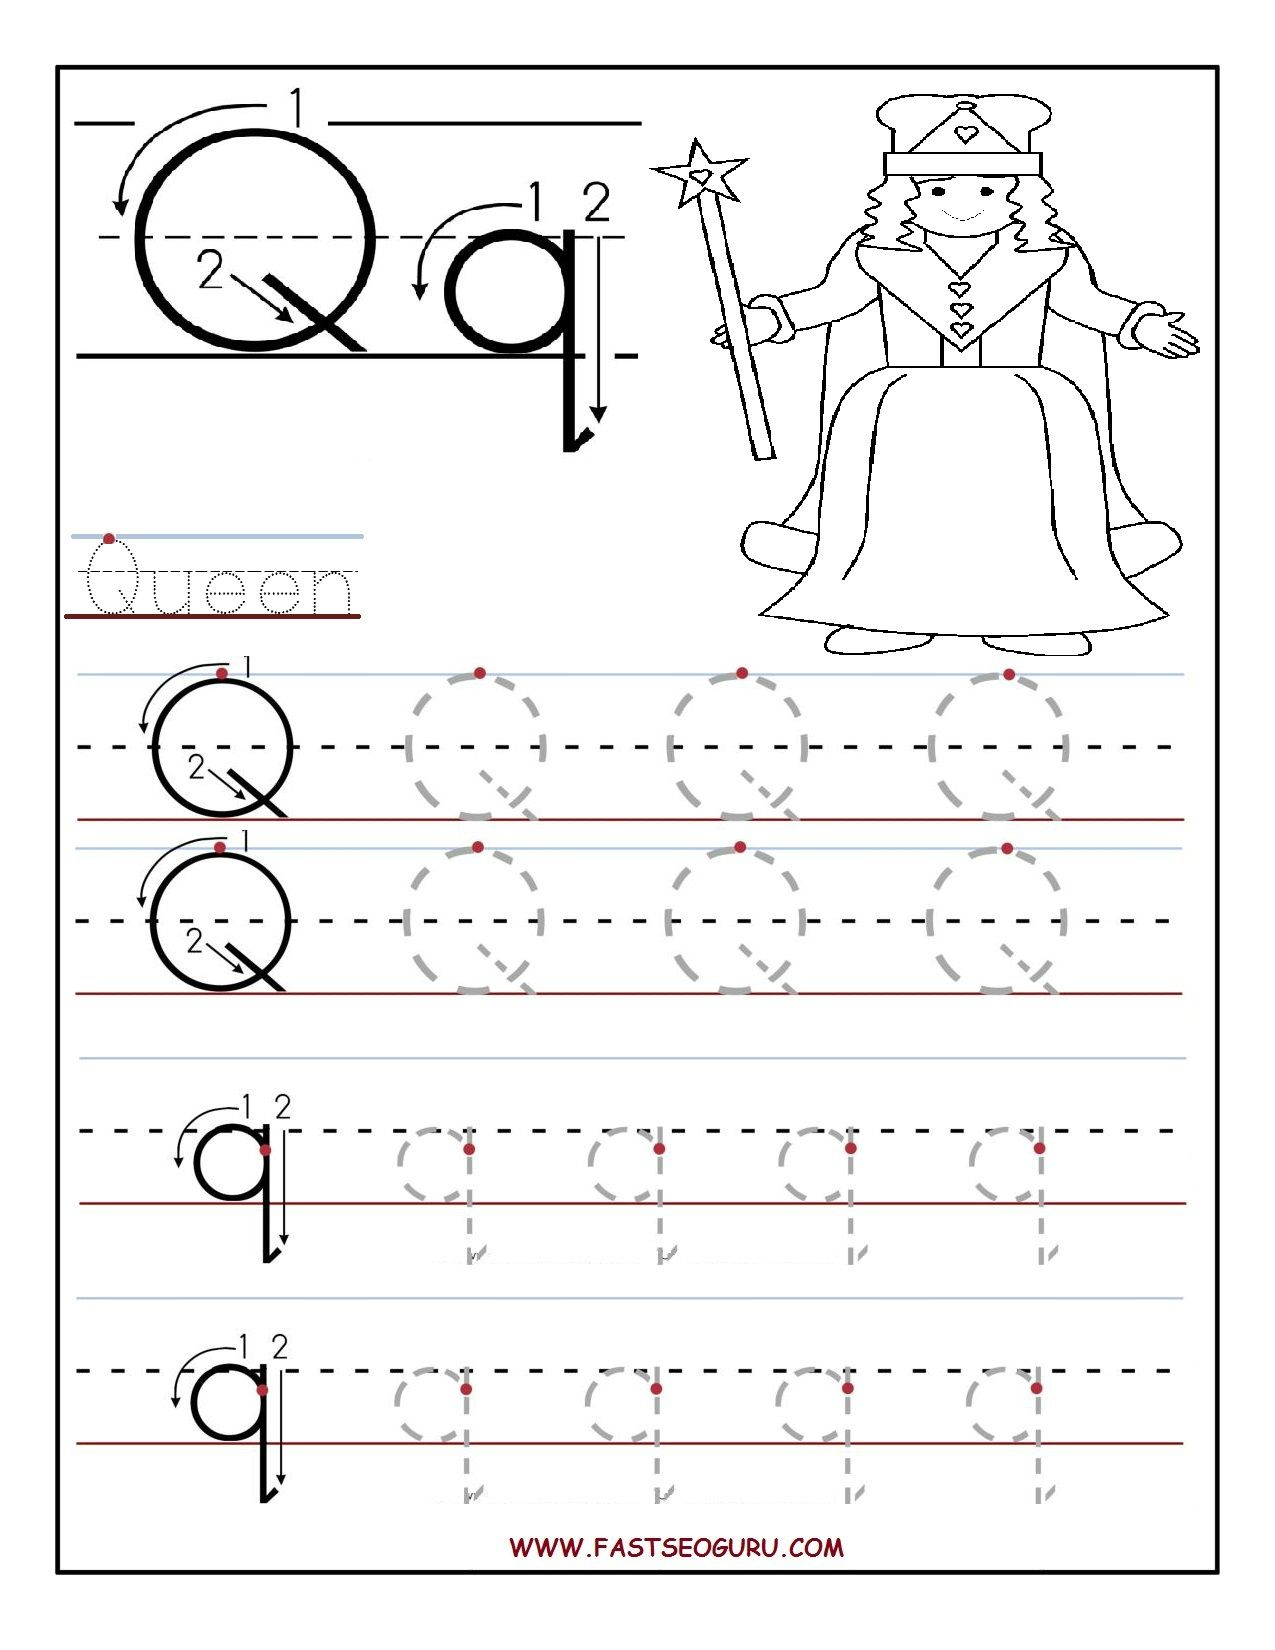 Letter Q Tracing Worksheets For Preschool